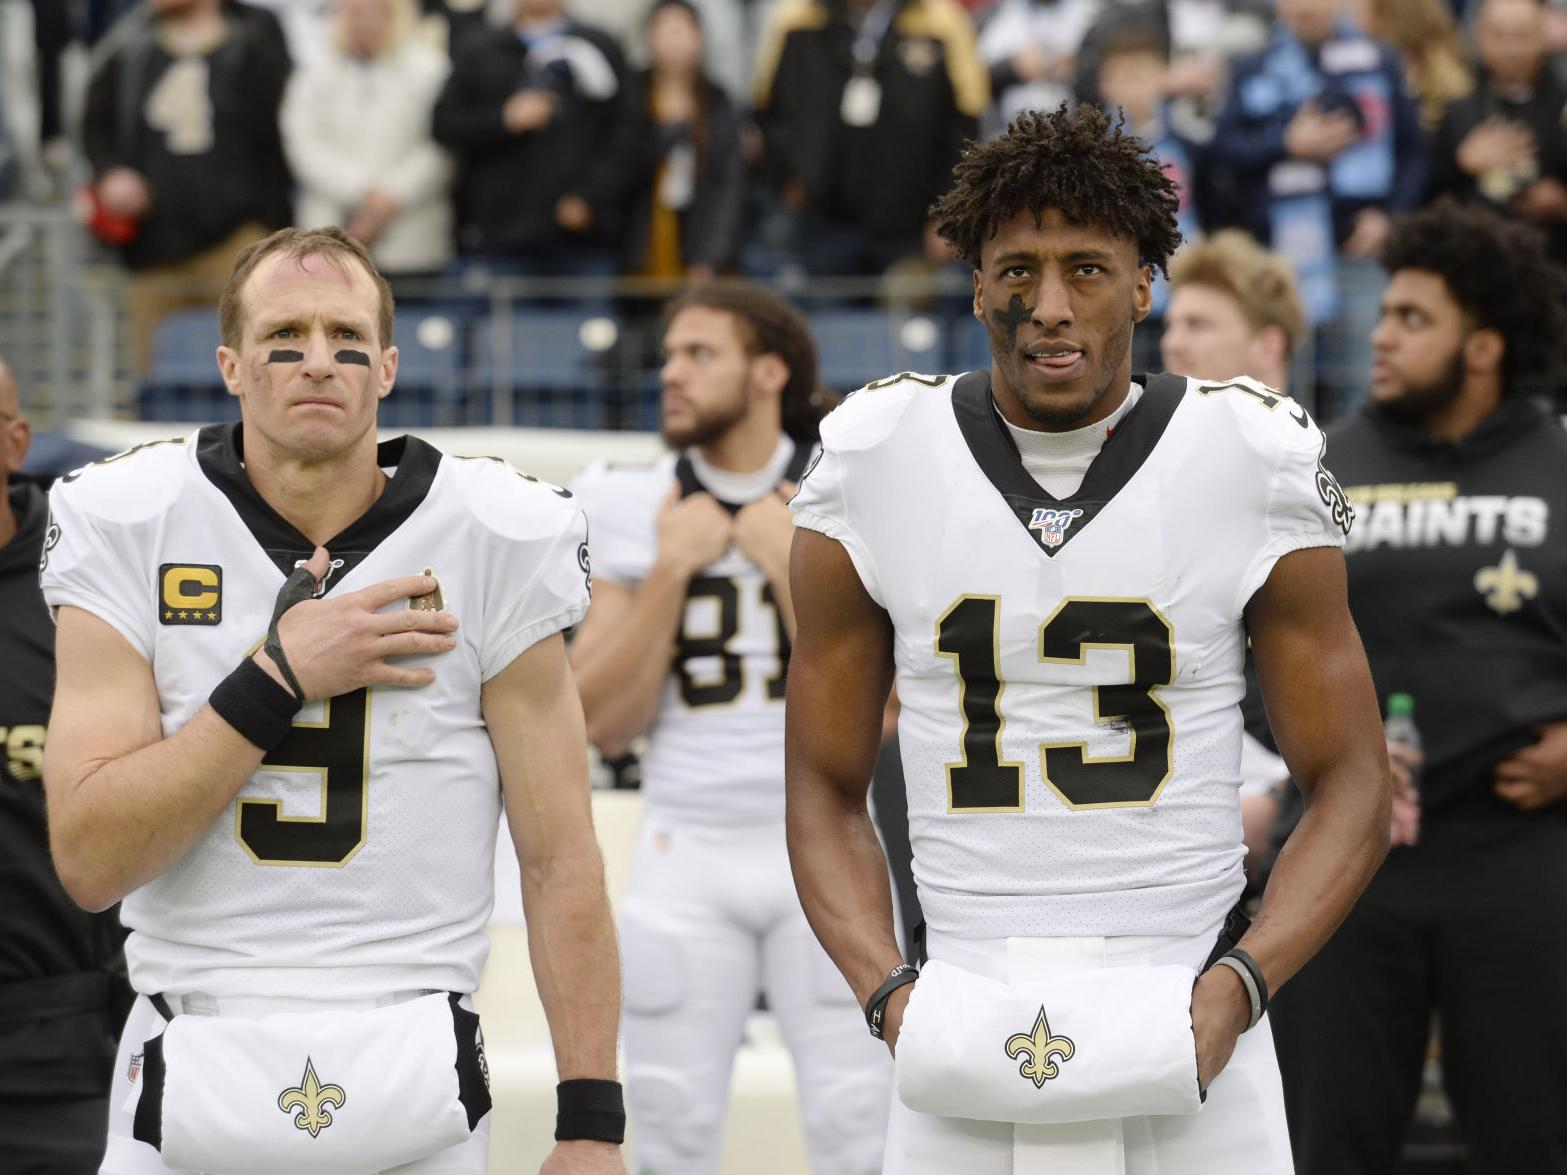 Drew Brees Apologizes Says His Comments Were Insensitive Completely Missed The Mark Saints Nola Com